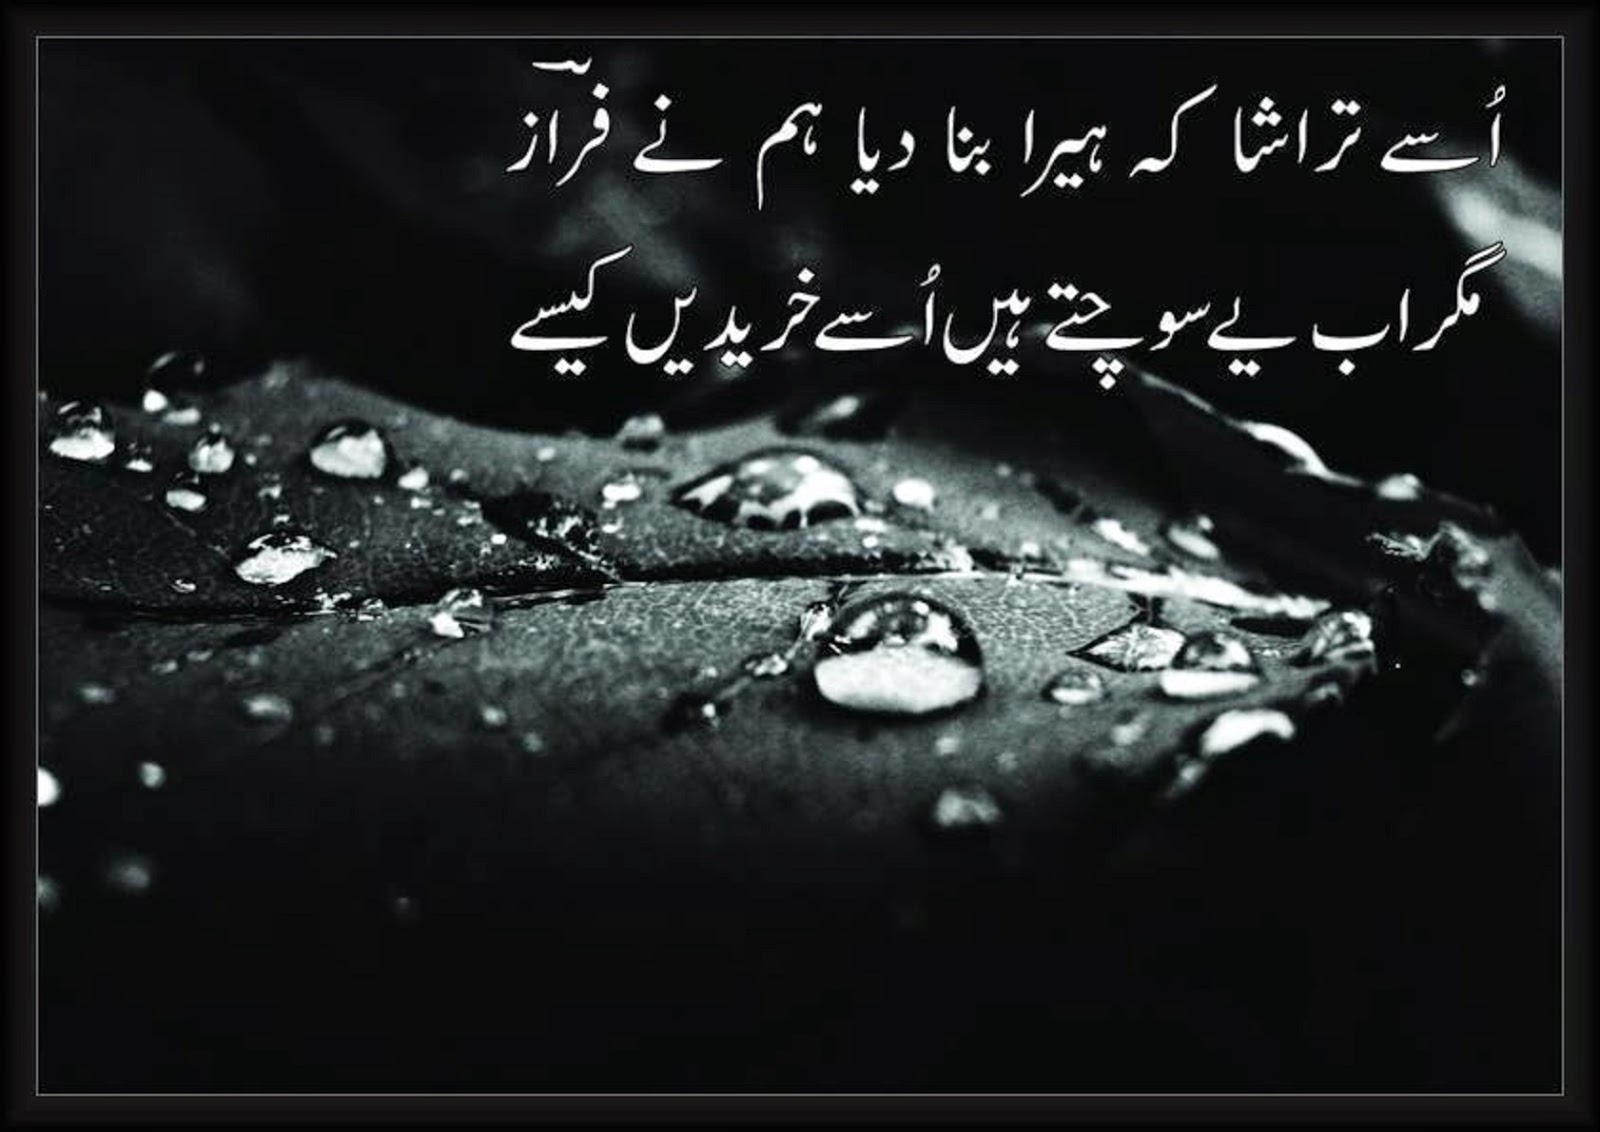 Download HD Wallpapers 3D Beautiful Sad Urdu Poetry HD Wallpapers 1600x1132